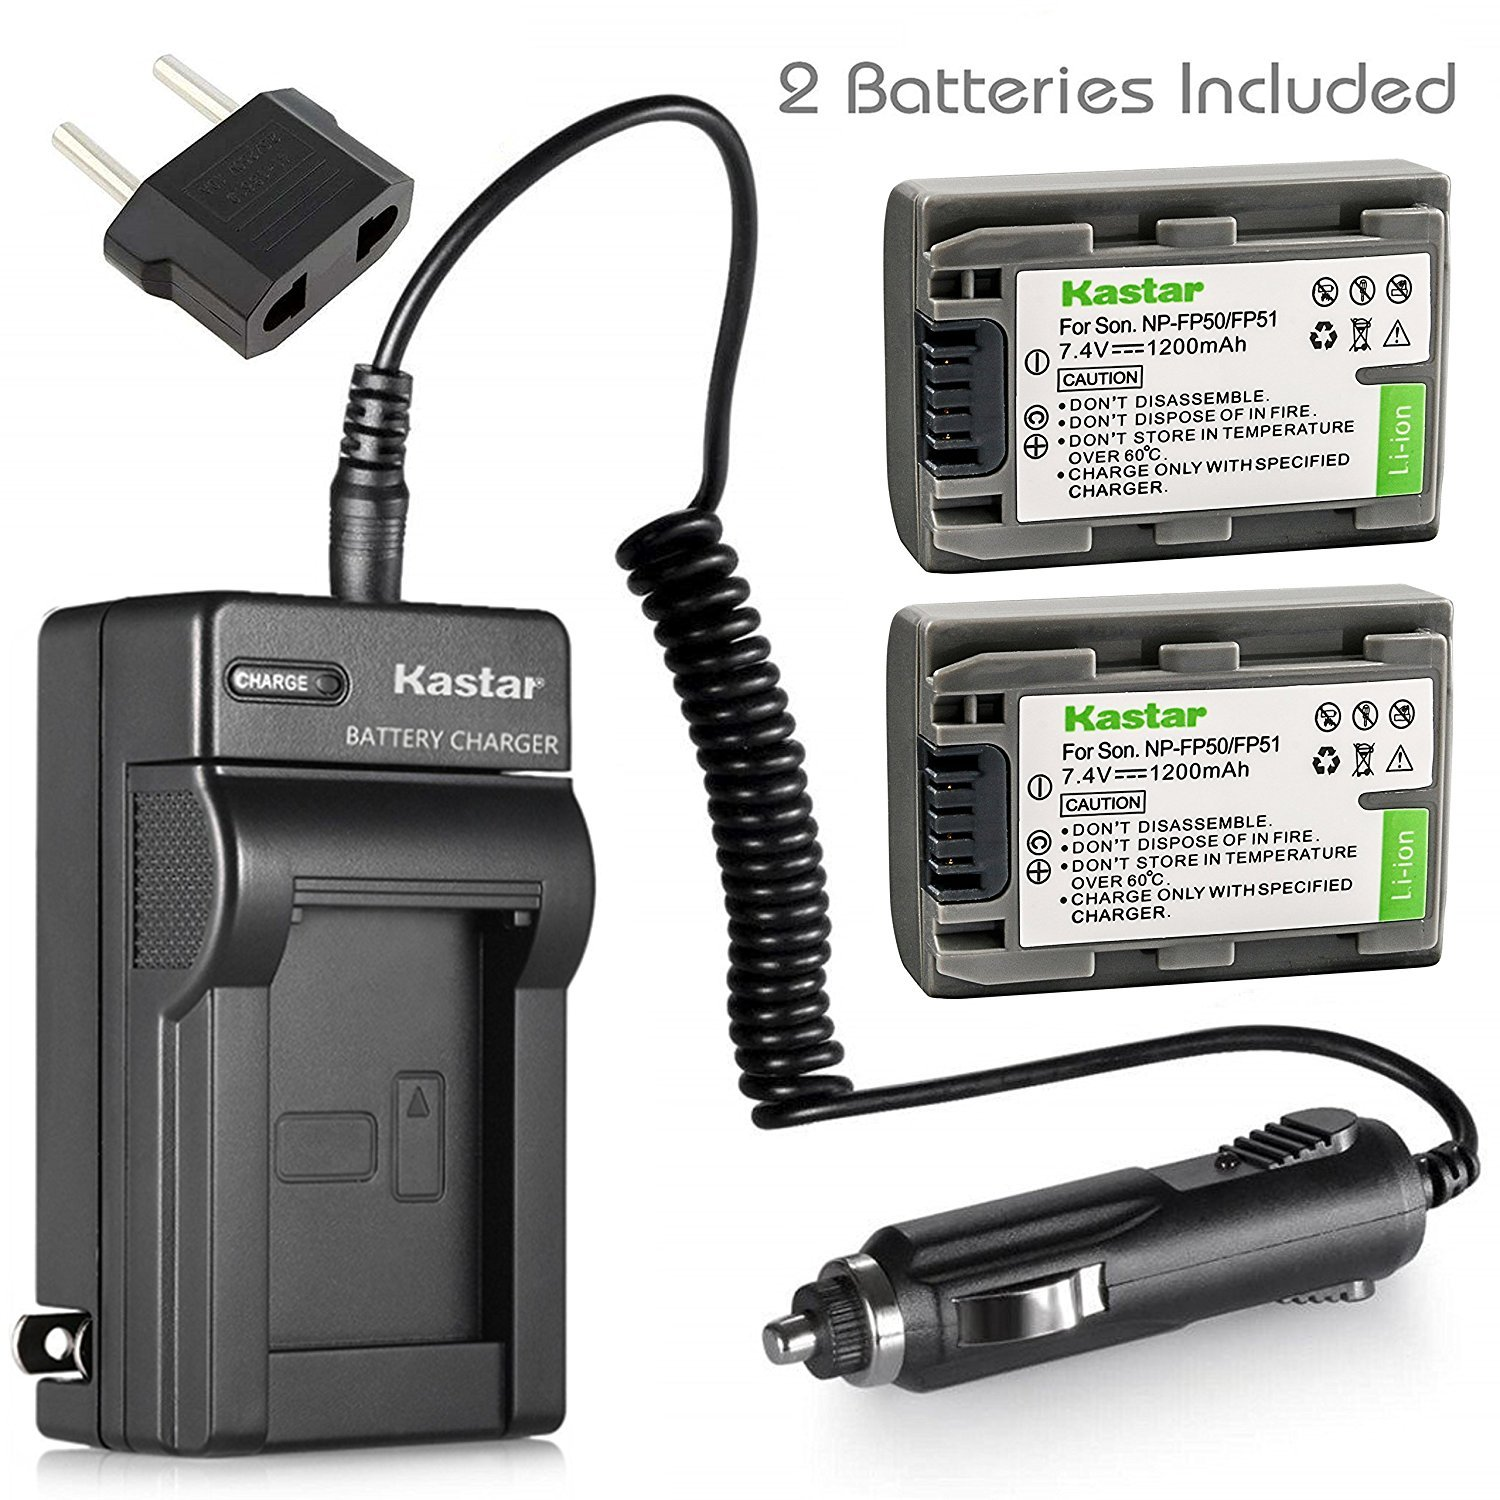 Kastar Battery (2-Pack) and Charger Kit for Sony NP-FP51, NP-FP50, NP-FP30, NP-FP70, NP-FP60, NP-FP71, TRV, TRV-U & Sony DCR-HC30 40 43E 65 85 94E 96 DCR-SR30 40E 50E 60E 70E 80E 100 Camera by Kastar